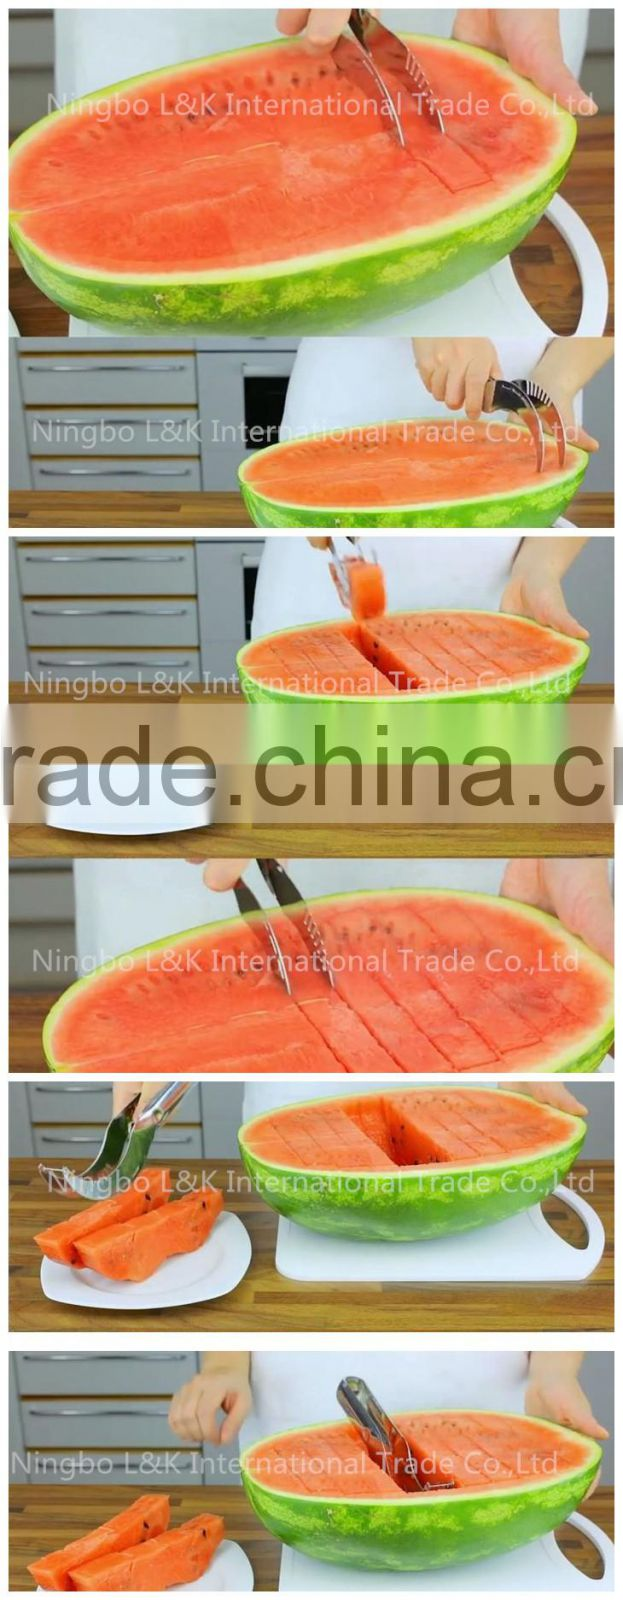 High quality stainless steel watermelon slicer corer, watermelon cutter